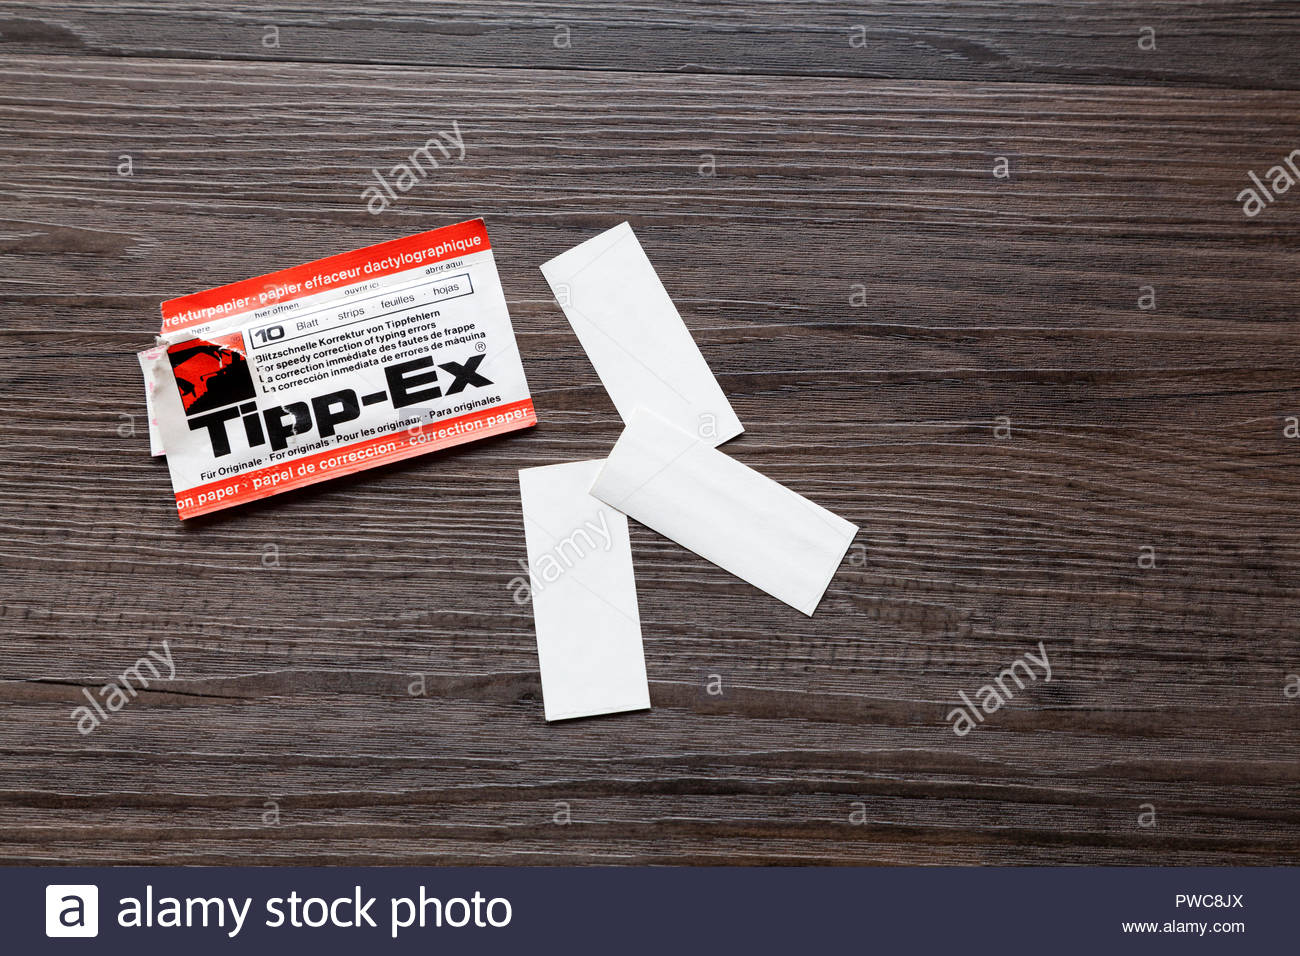 Tipp-ex paper correction strips for an old fashioned typewriter - Stock Image